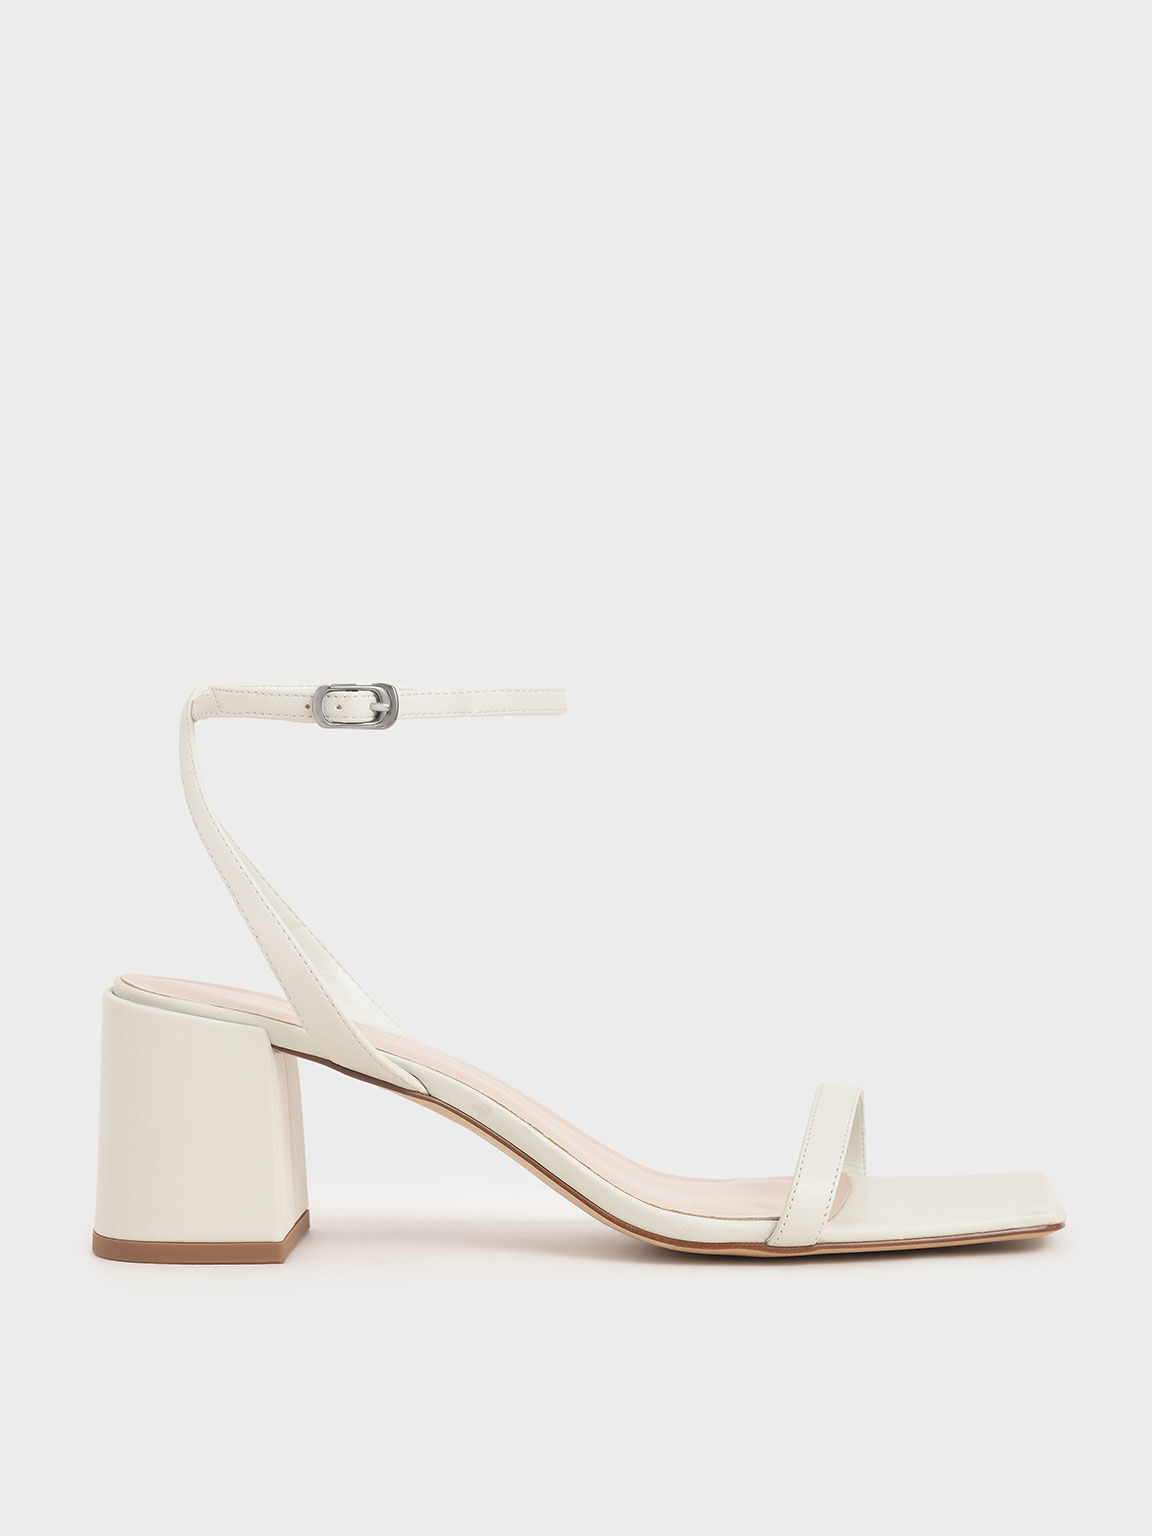 Ankle Strap Block Heel Sandals, White, hi-res